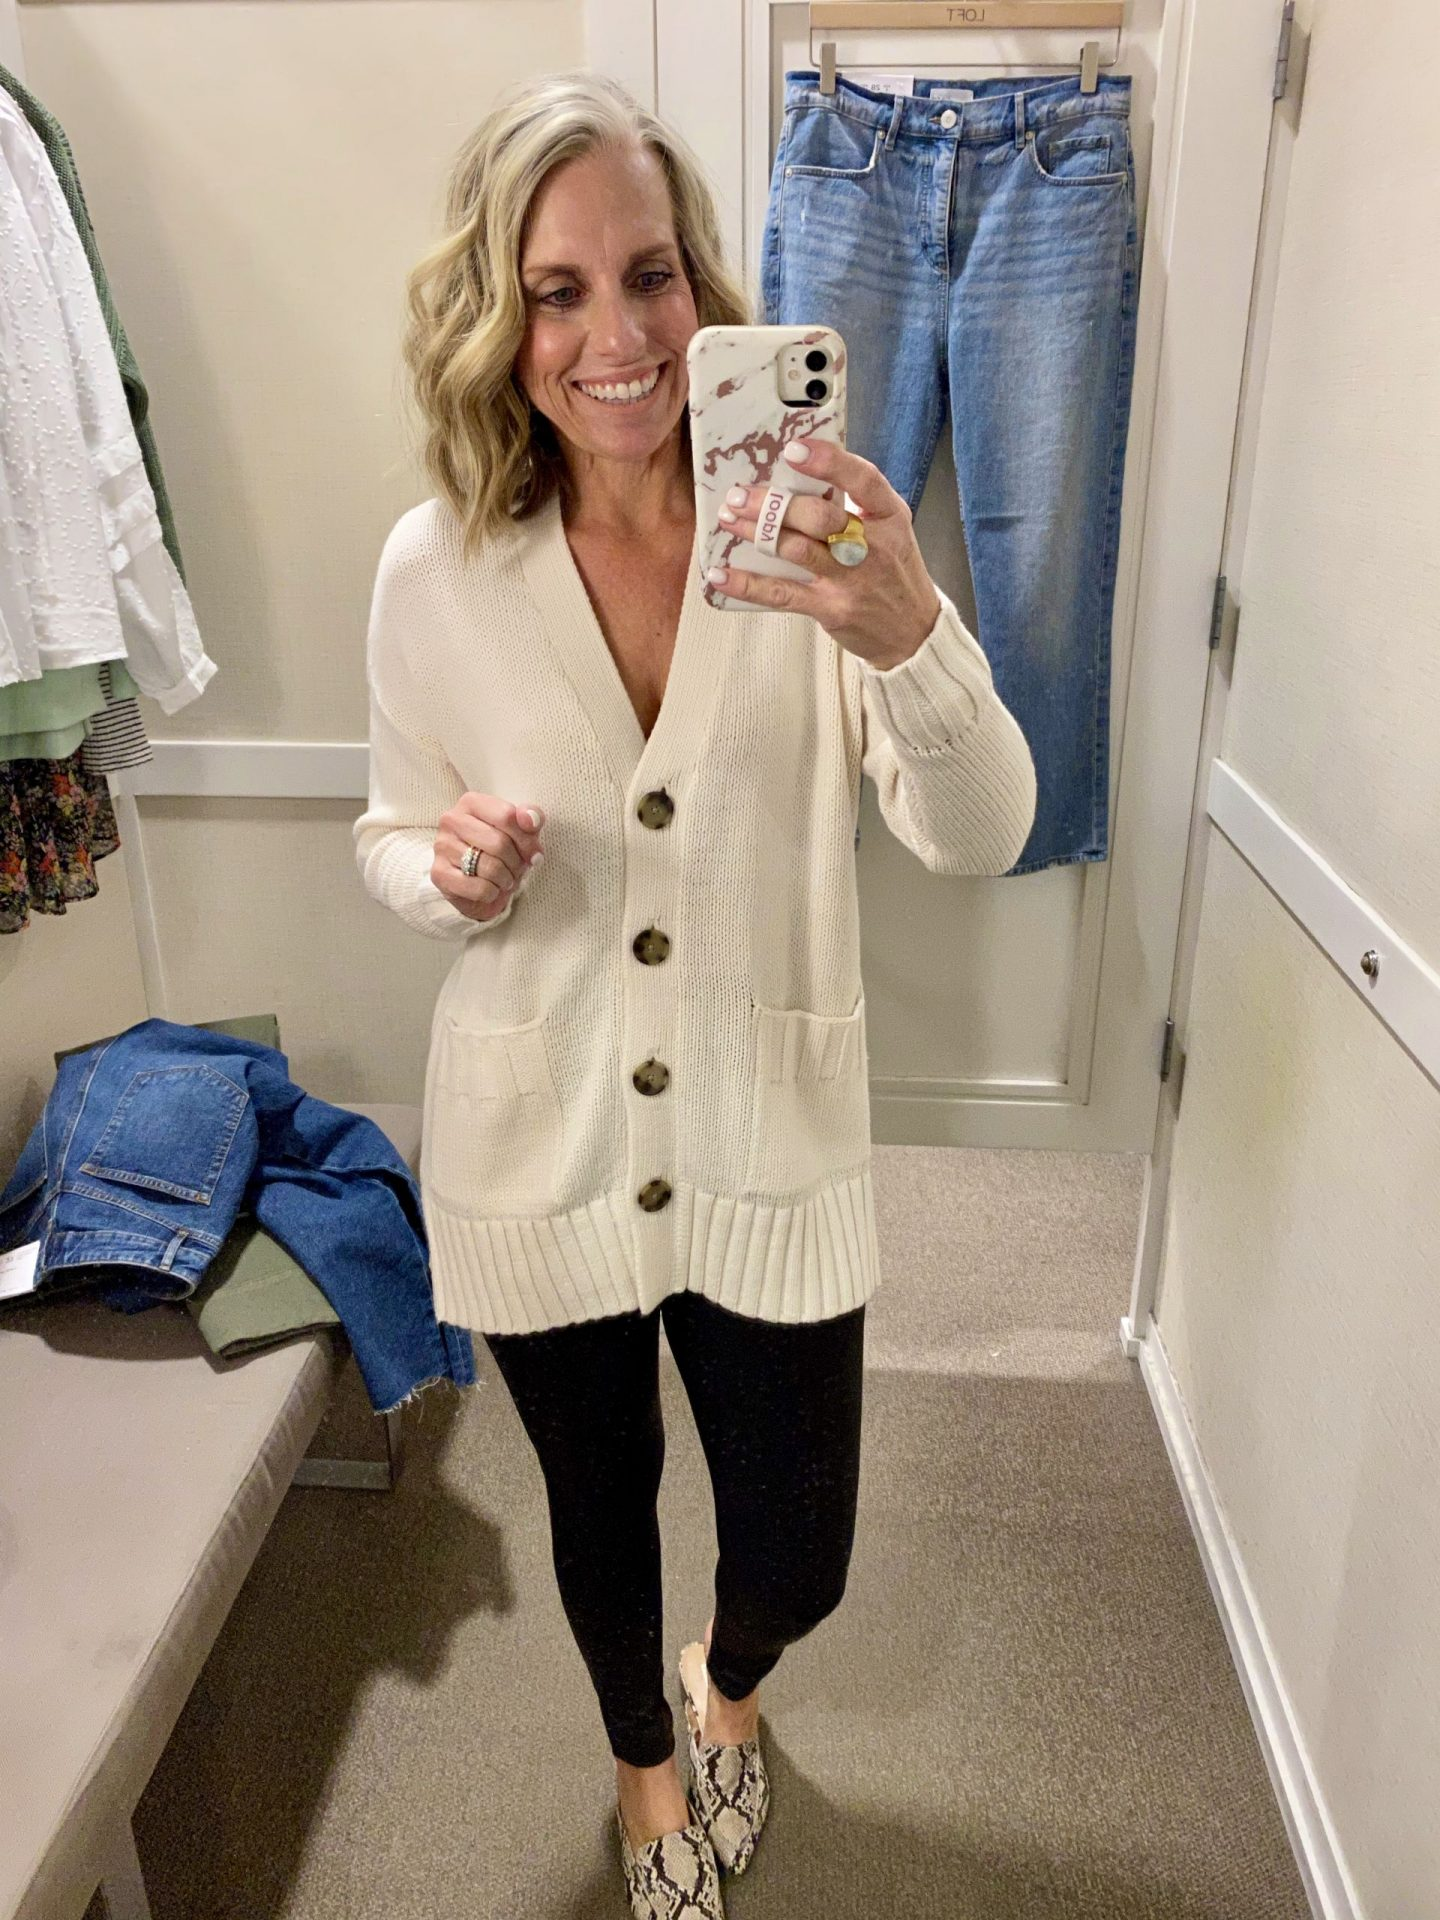 in store loft try on cardigan